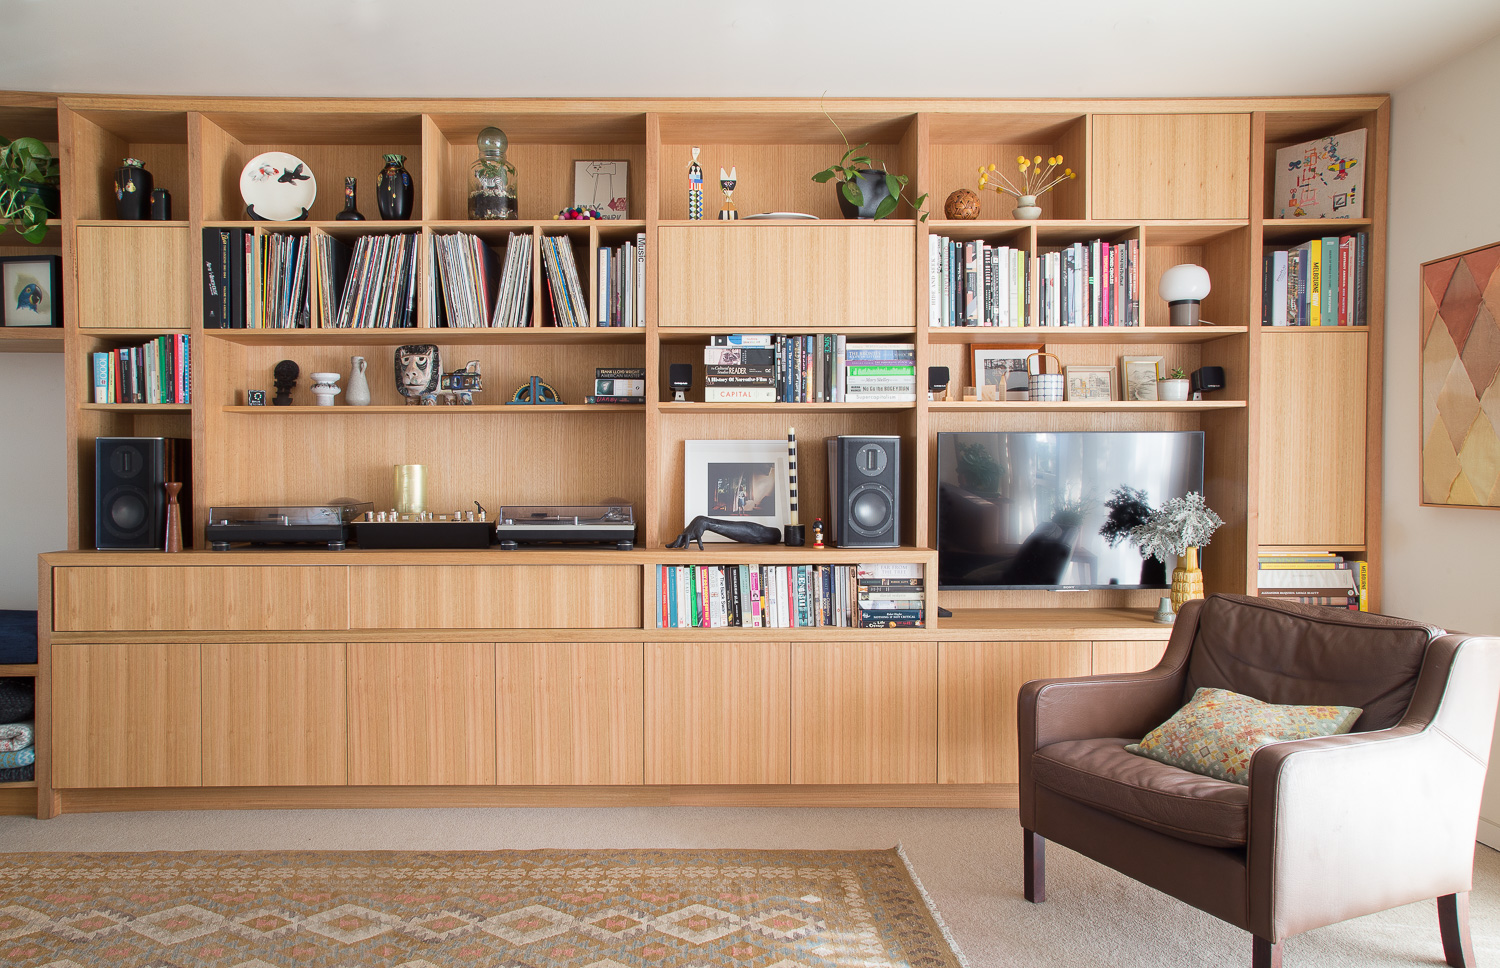 Handcrafted sustainable timber | Auld Design Custom Joinery Wall Unit | Furniture Design Melbourne and Geelong